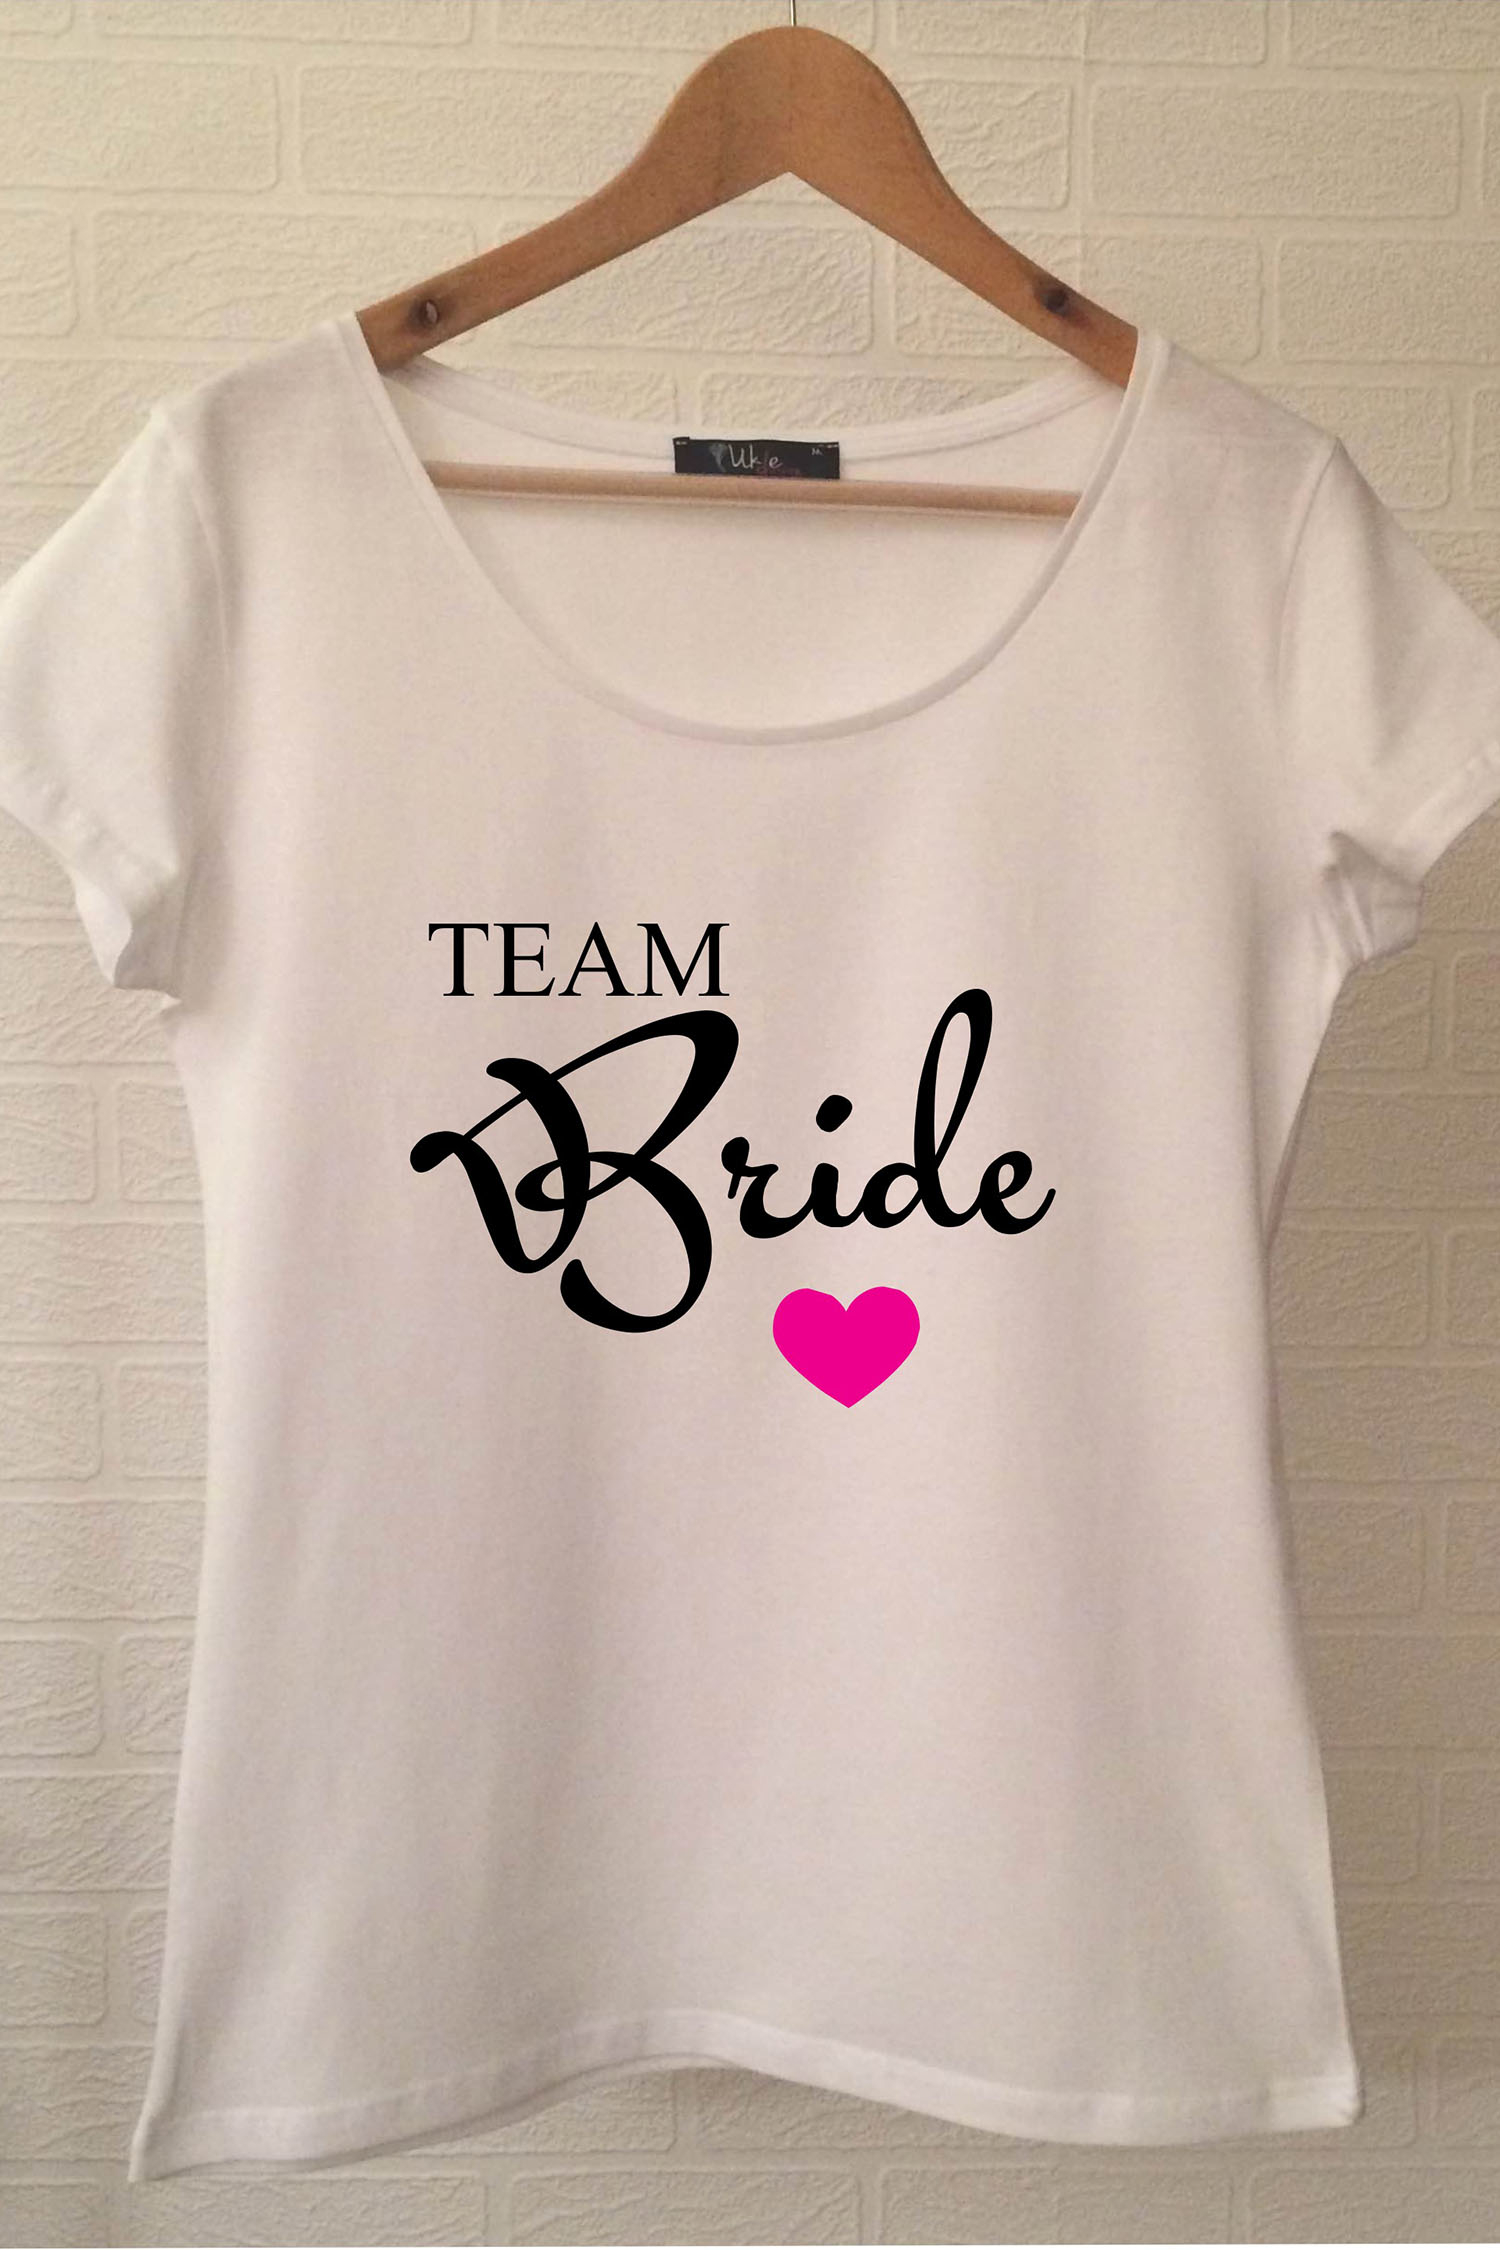 Team Bride T-shirt ukde105